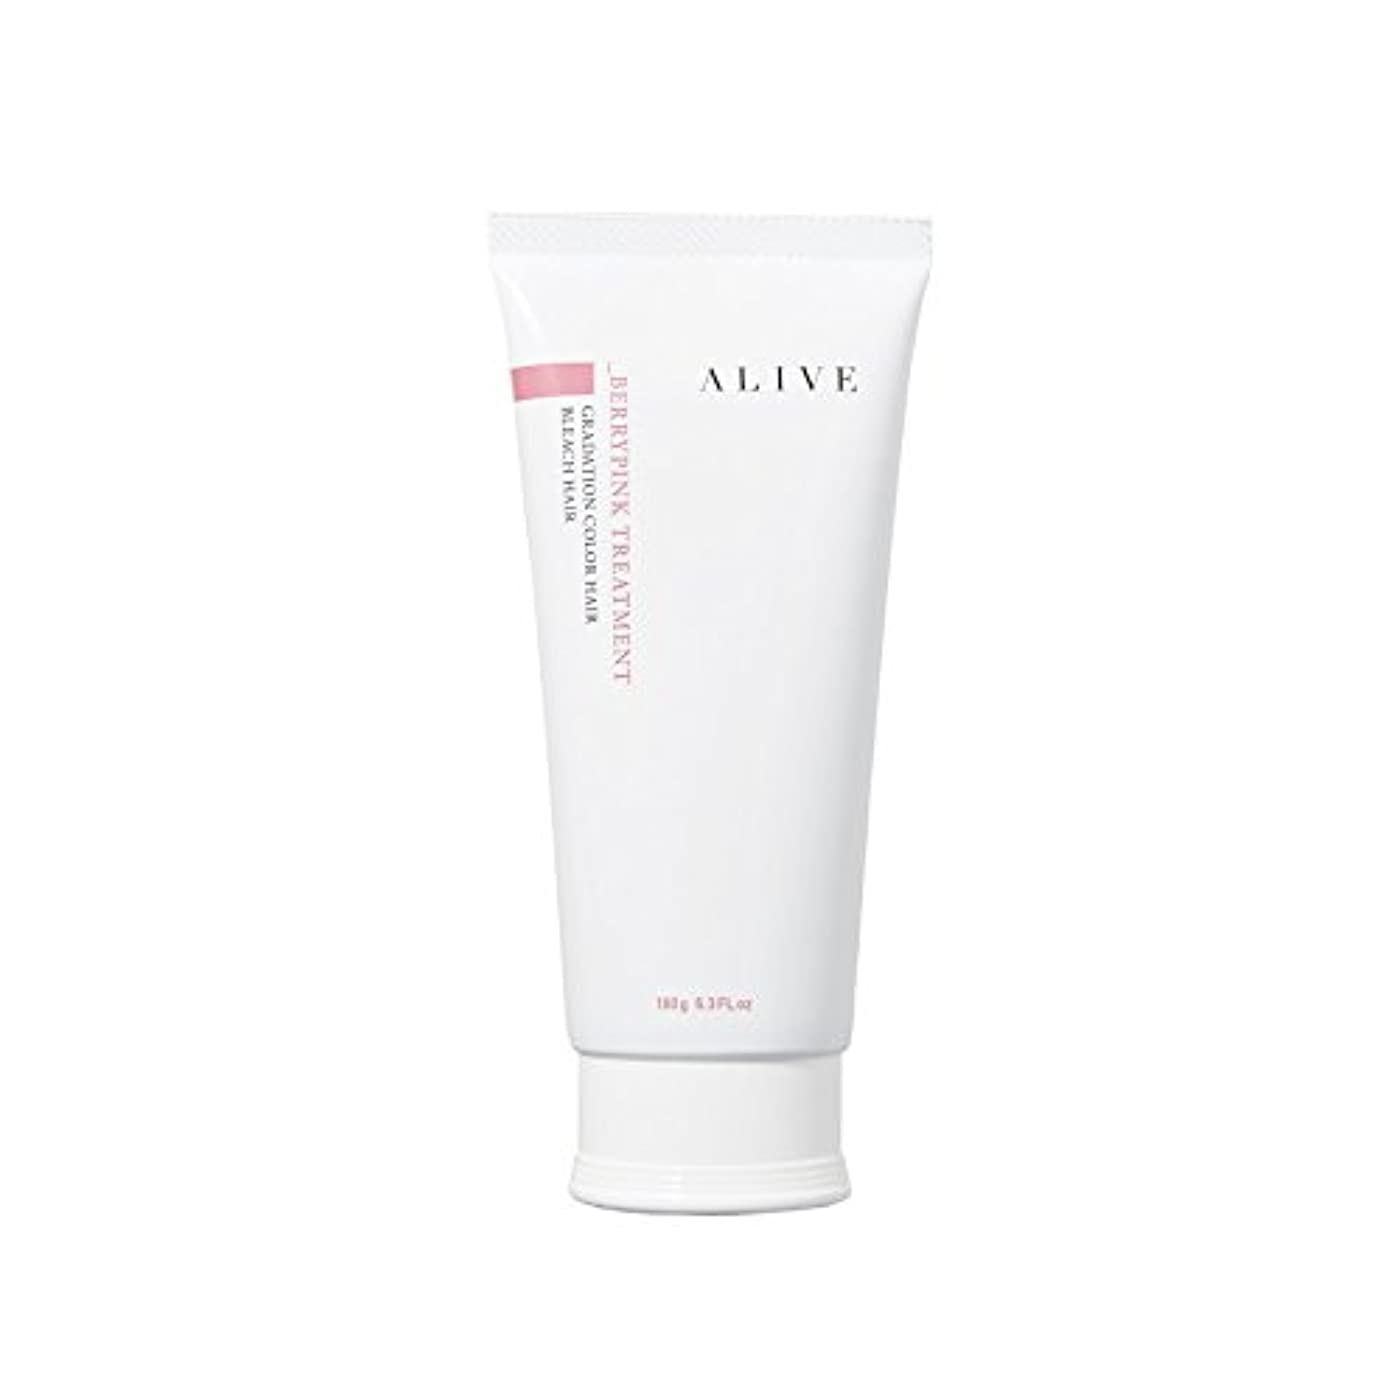 ALIVE COLOR TREATMENT VERY PINK アライブ カラートリートメント ベリーピンク 弱酸性 低刺激 微香性 180g